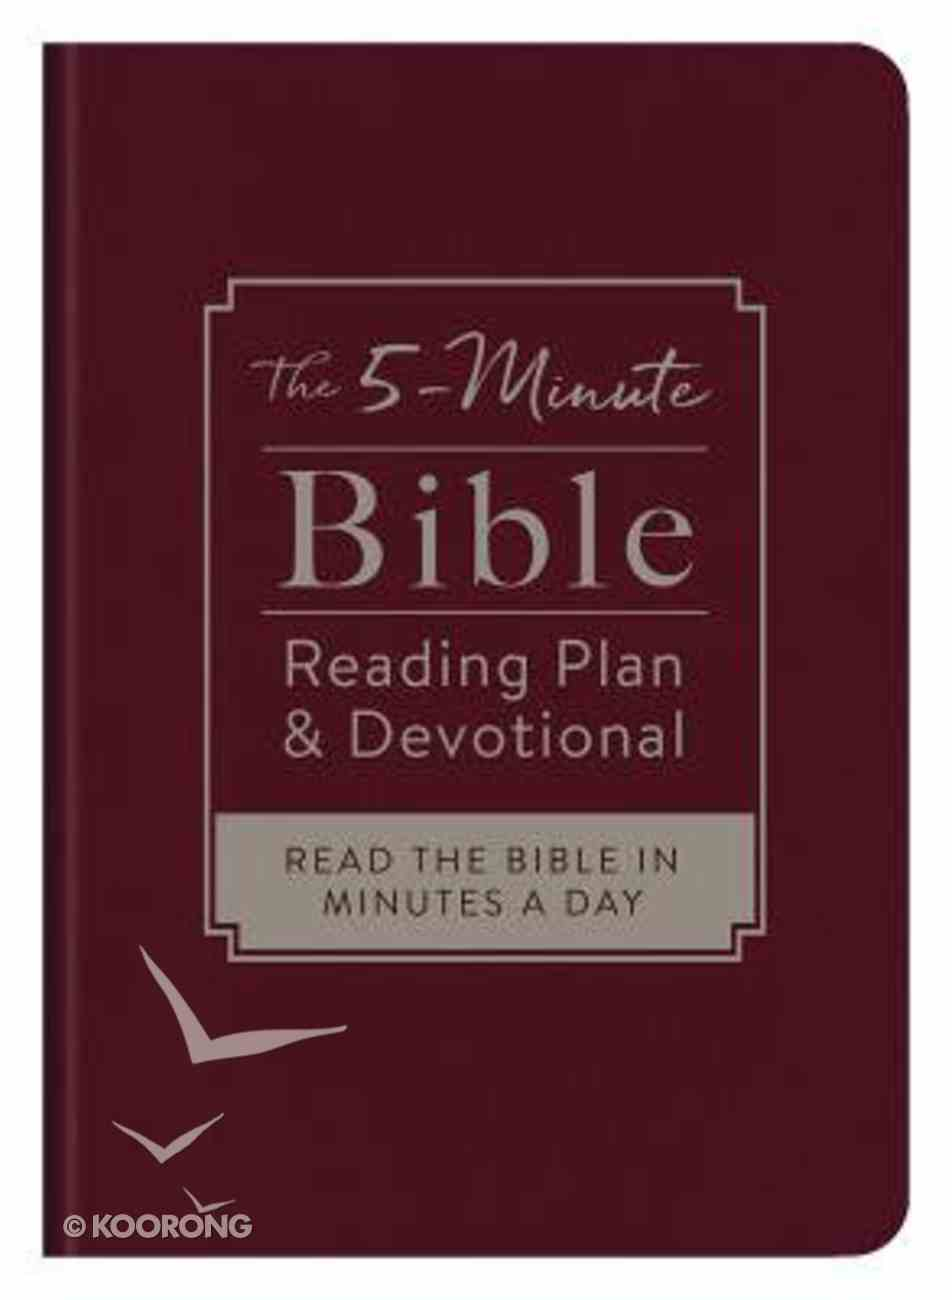 The 5-Minute Bible Reading Plan and Devotional: Read the Bible in Minutes a Day Imitation Leather